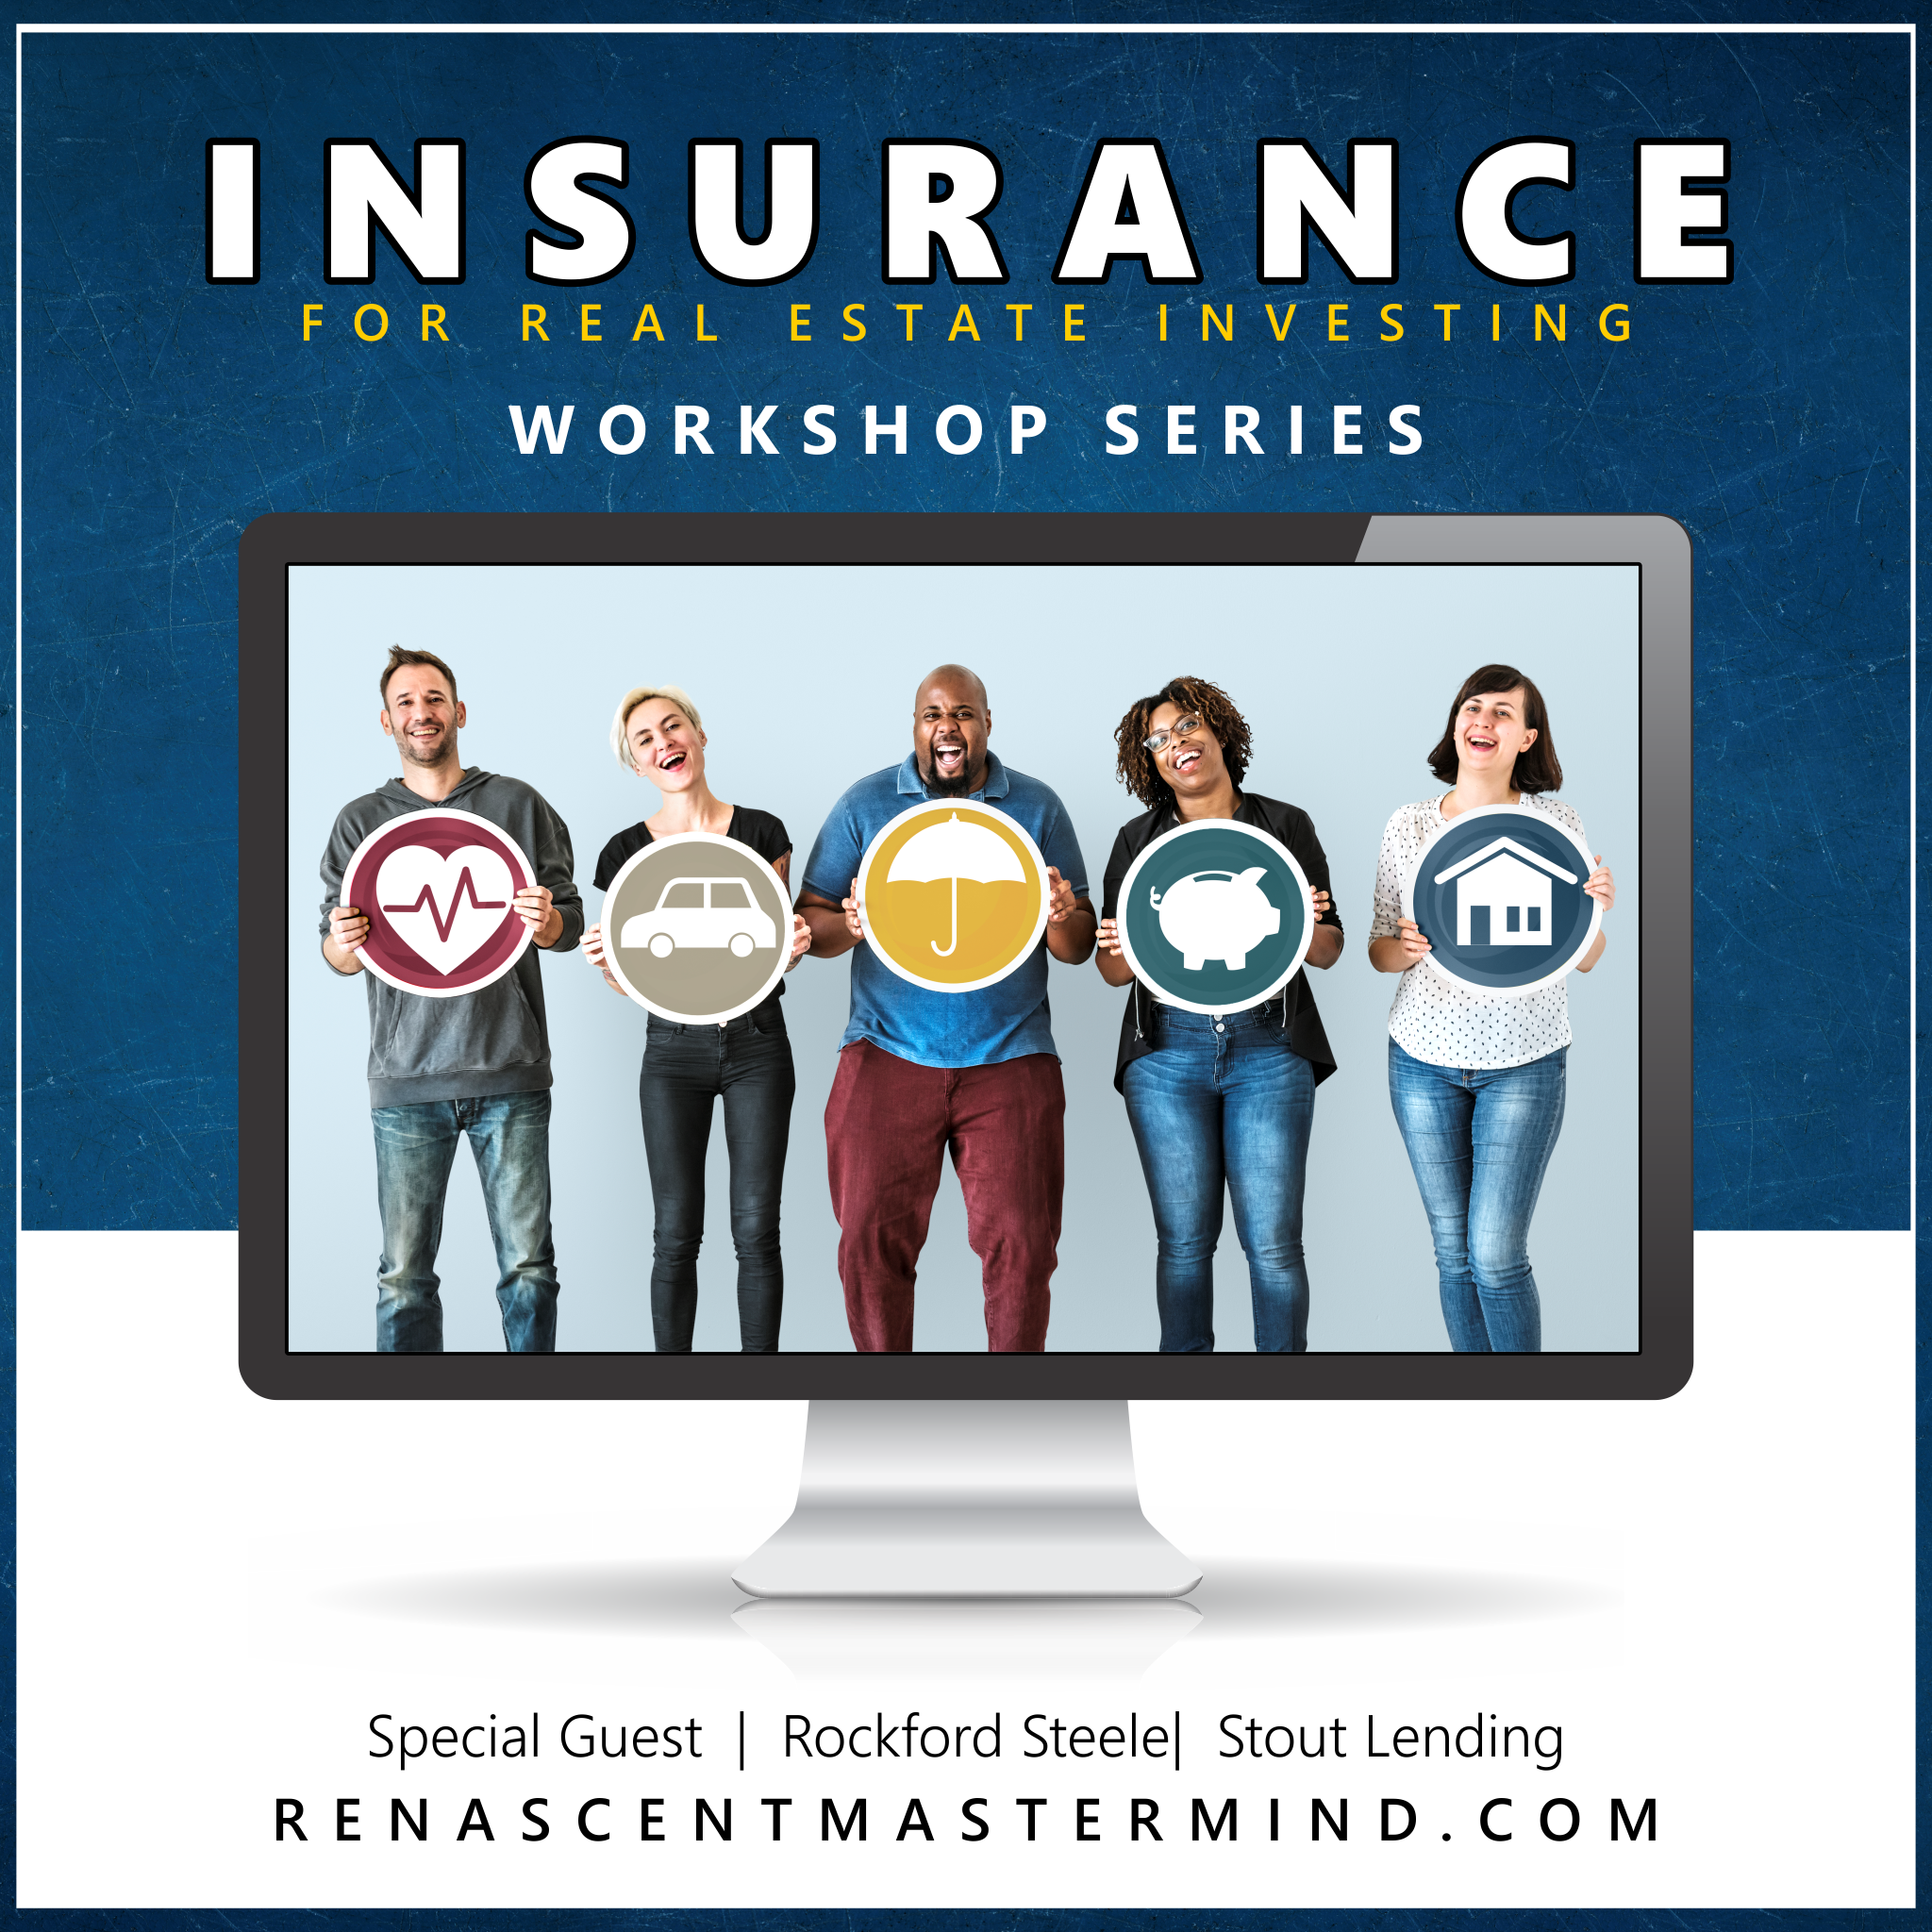 Insurance for Real Estate Investing with Rockford Steele, Stout Lending | Workshop Series